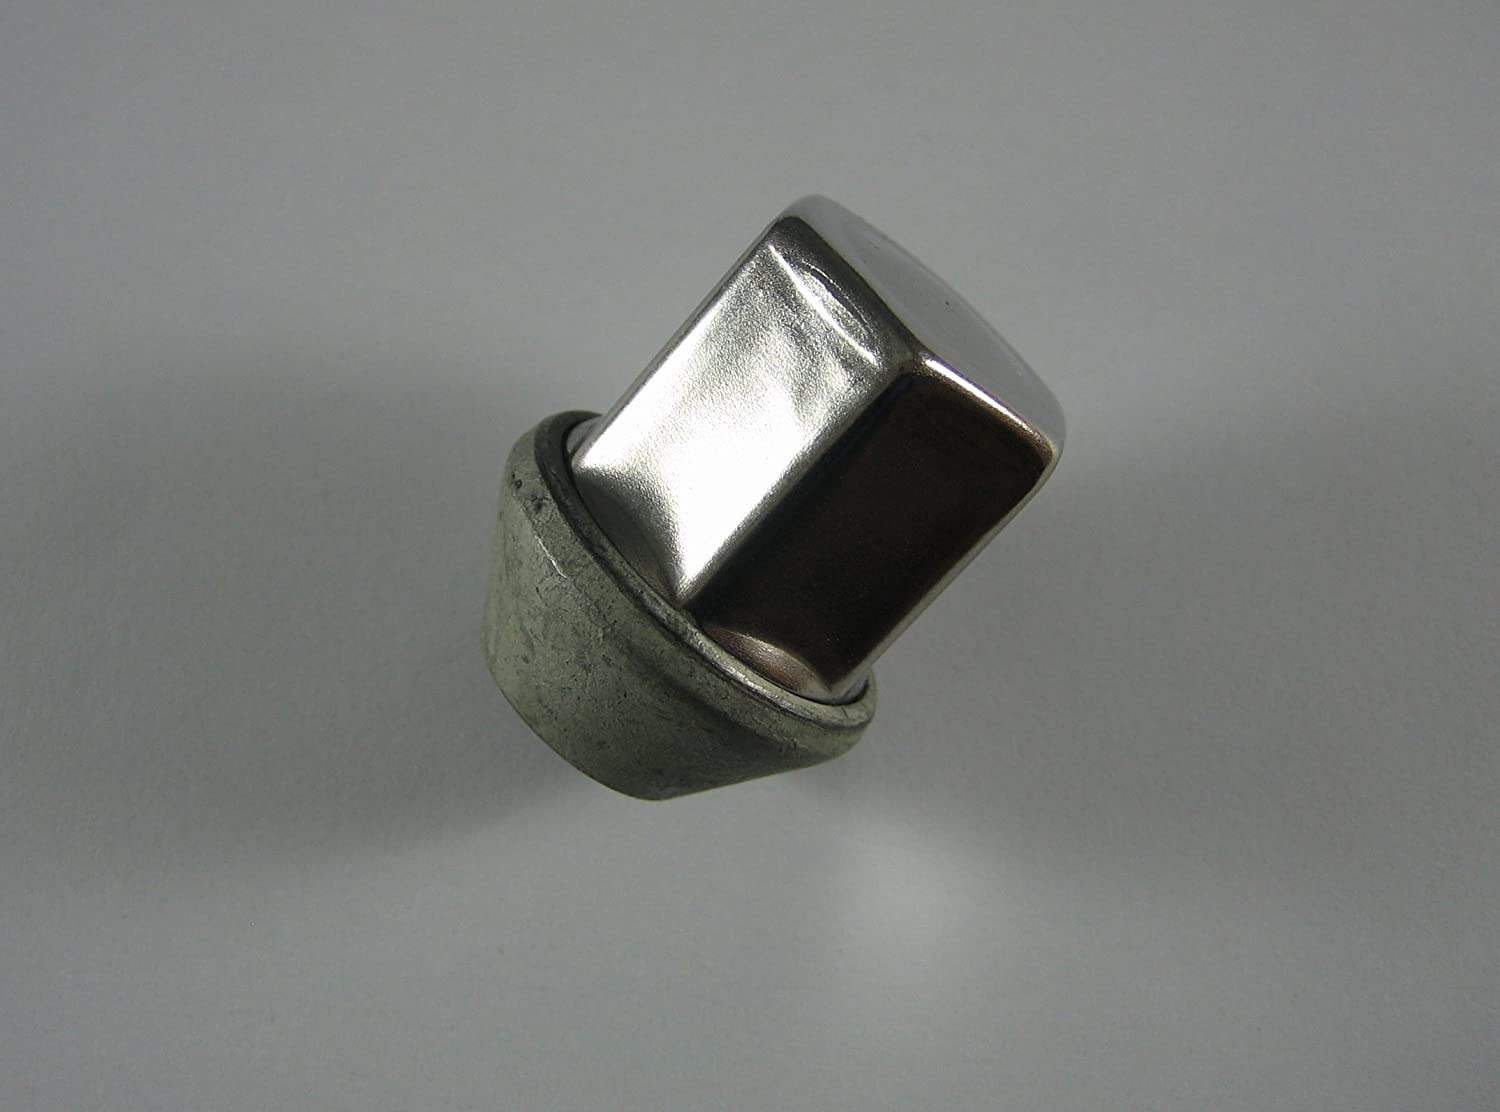 One (1) Genuine Land Rover Lug Nut LR001381